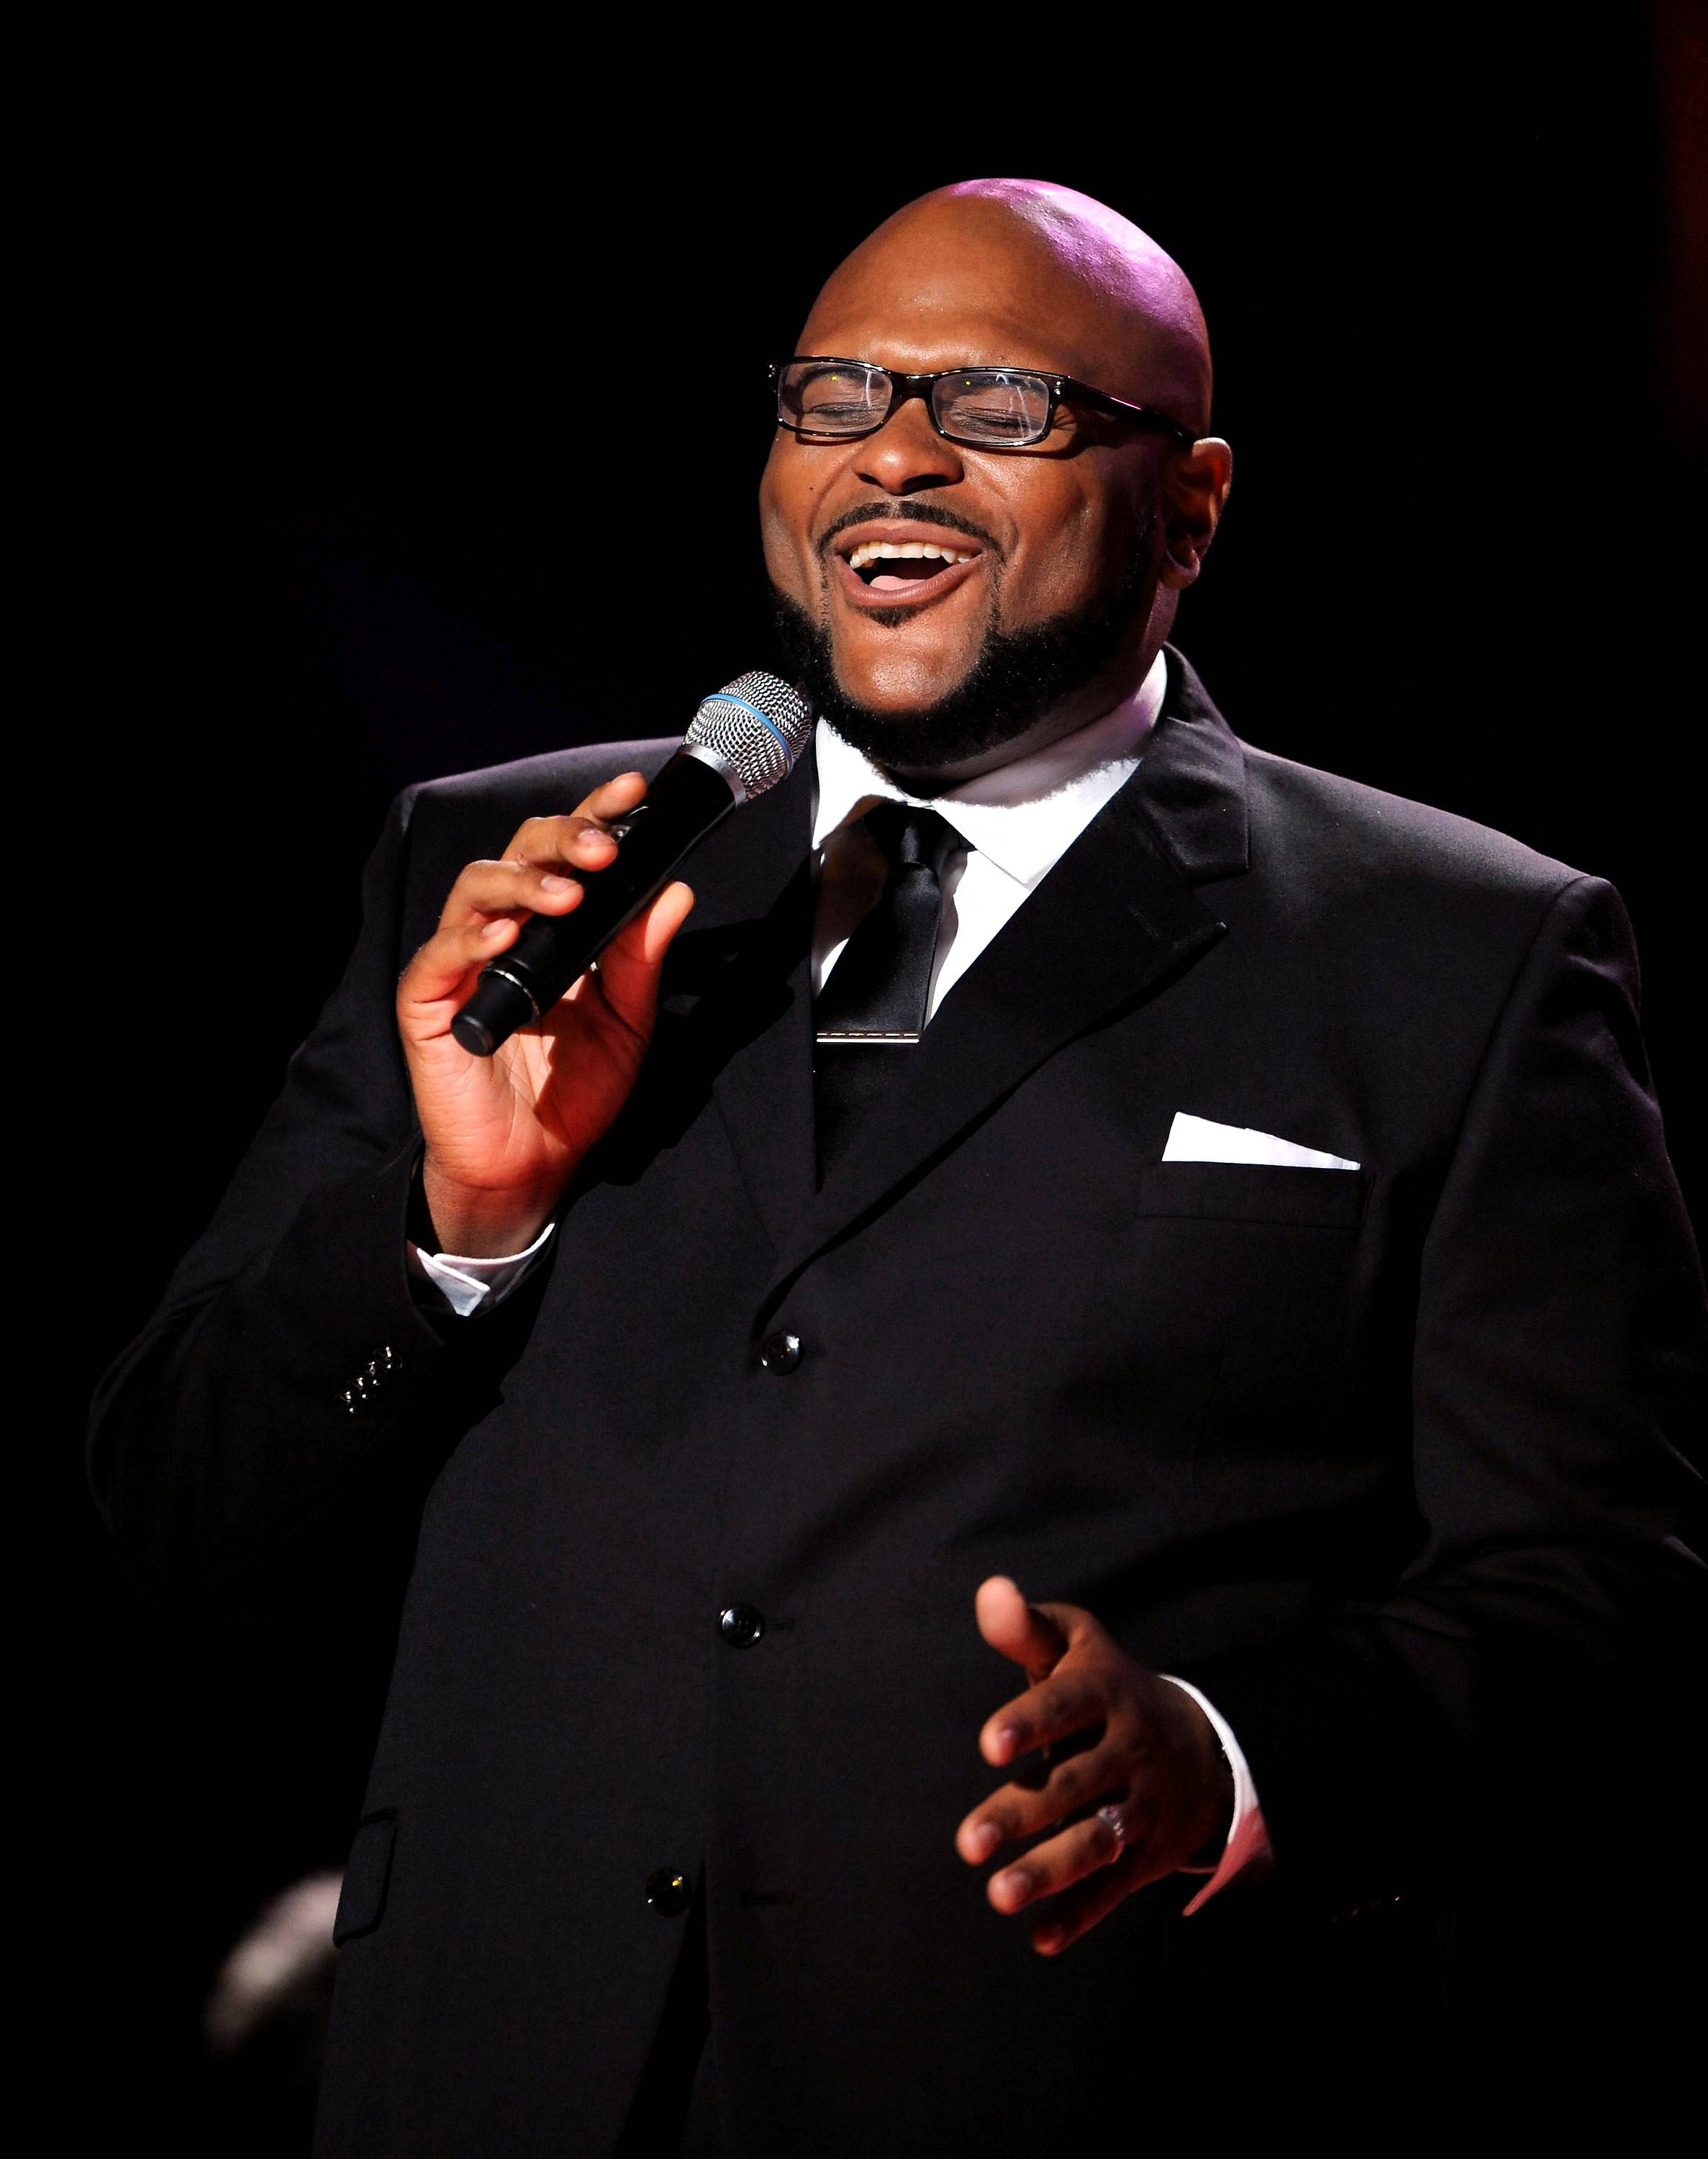 """Ruben Studdard - American Idol winner Ruben Studdard joined BET for the 5th Annual Celebration of Gospel, performing his hit """"I Need An Angel.""""(Photo: Tom Donoghue/PictureGroup)"""